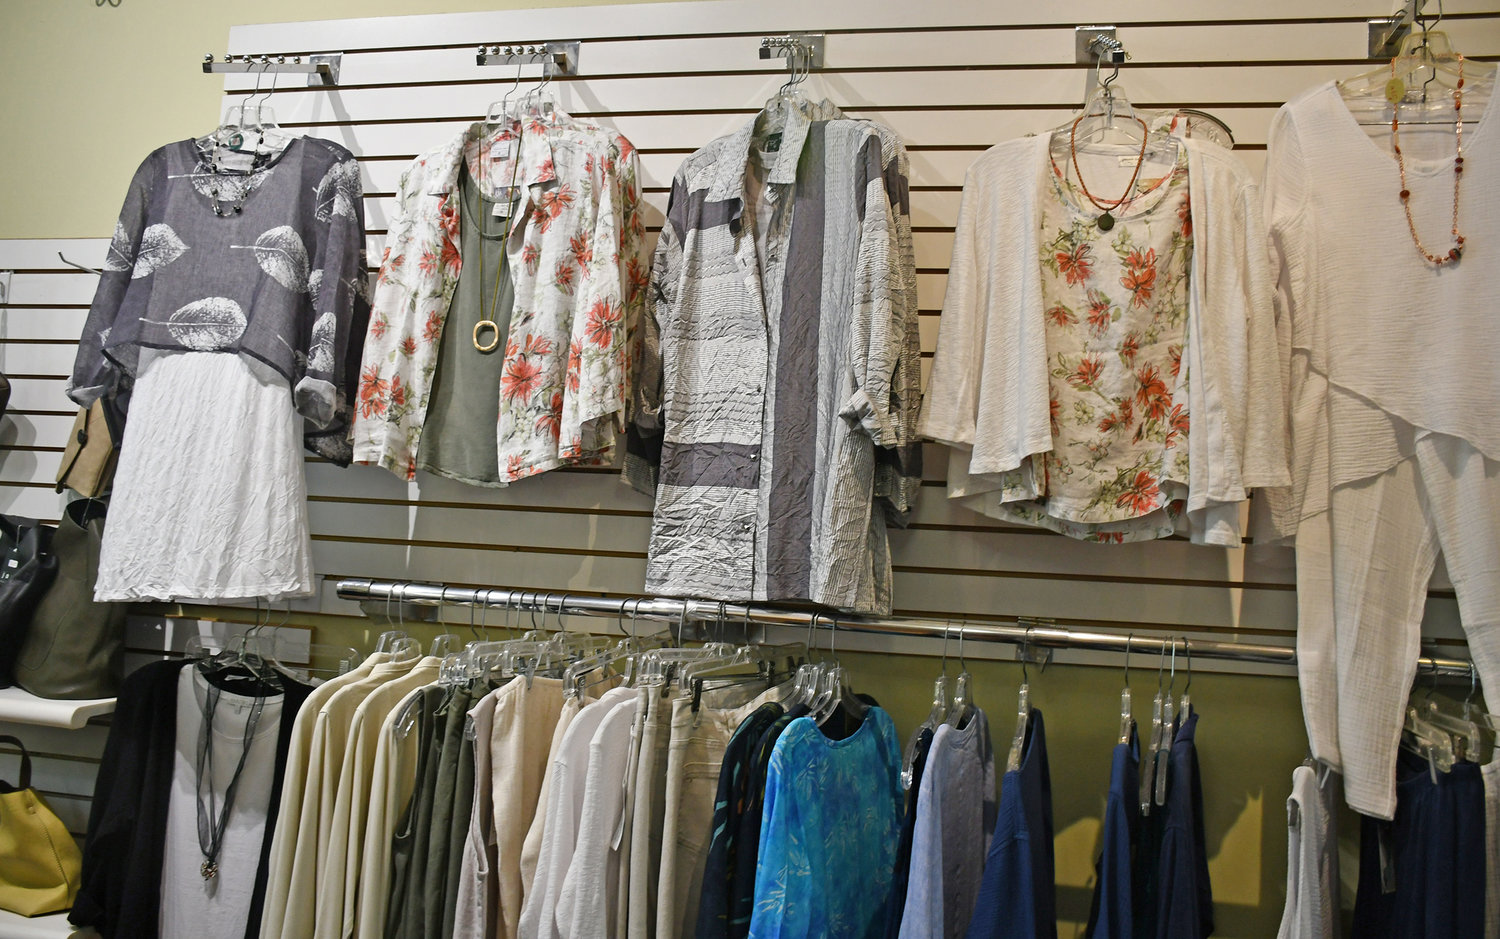 STYLE AND COMFORT — The Village Crossing offers women' clothing lines made from cottons and linens for comfort, along with originality and style you wont find in the average department stores, owner Joyce Polanowizc explained. The shop also carries women's accessories, including handbags, shoes and jewelry.